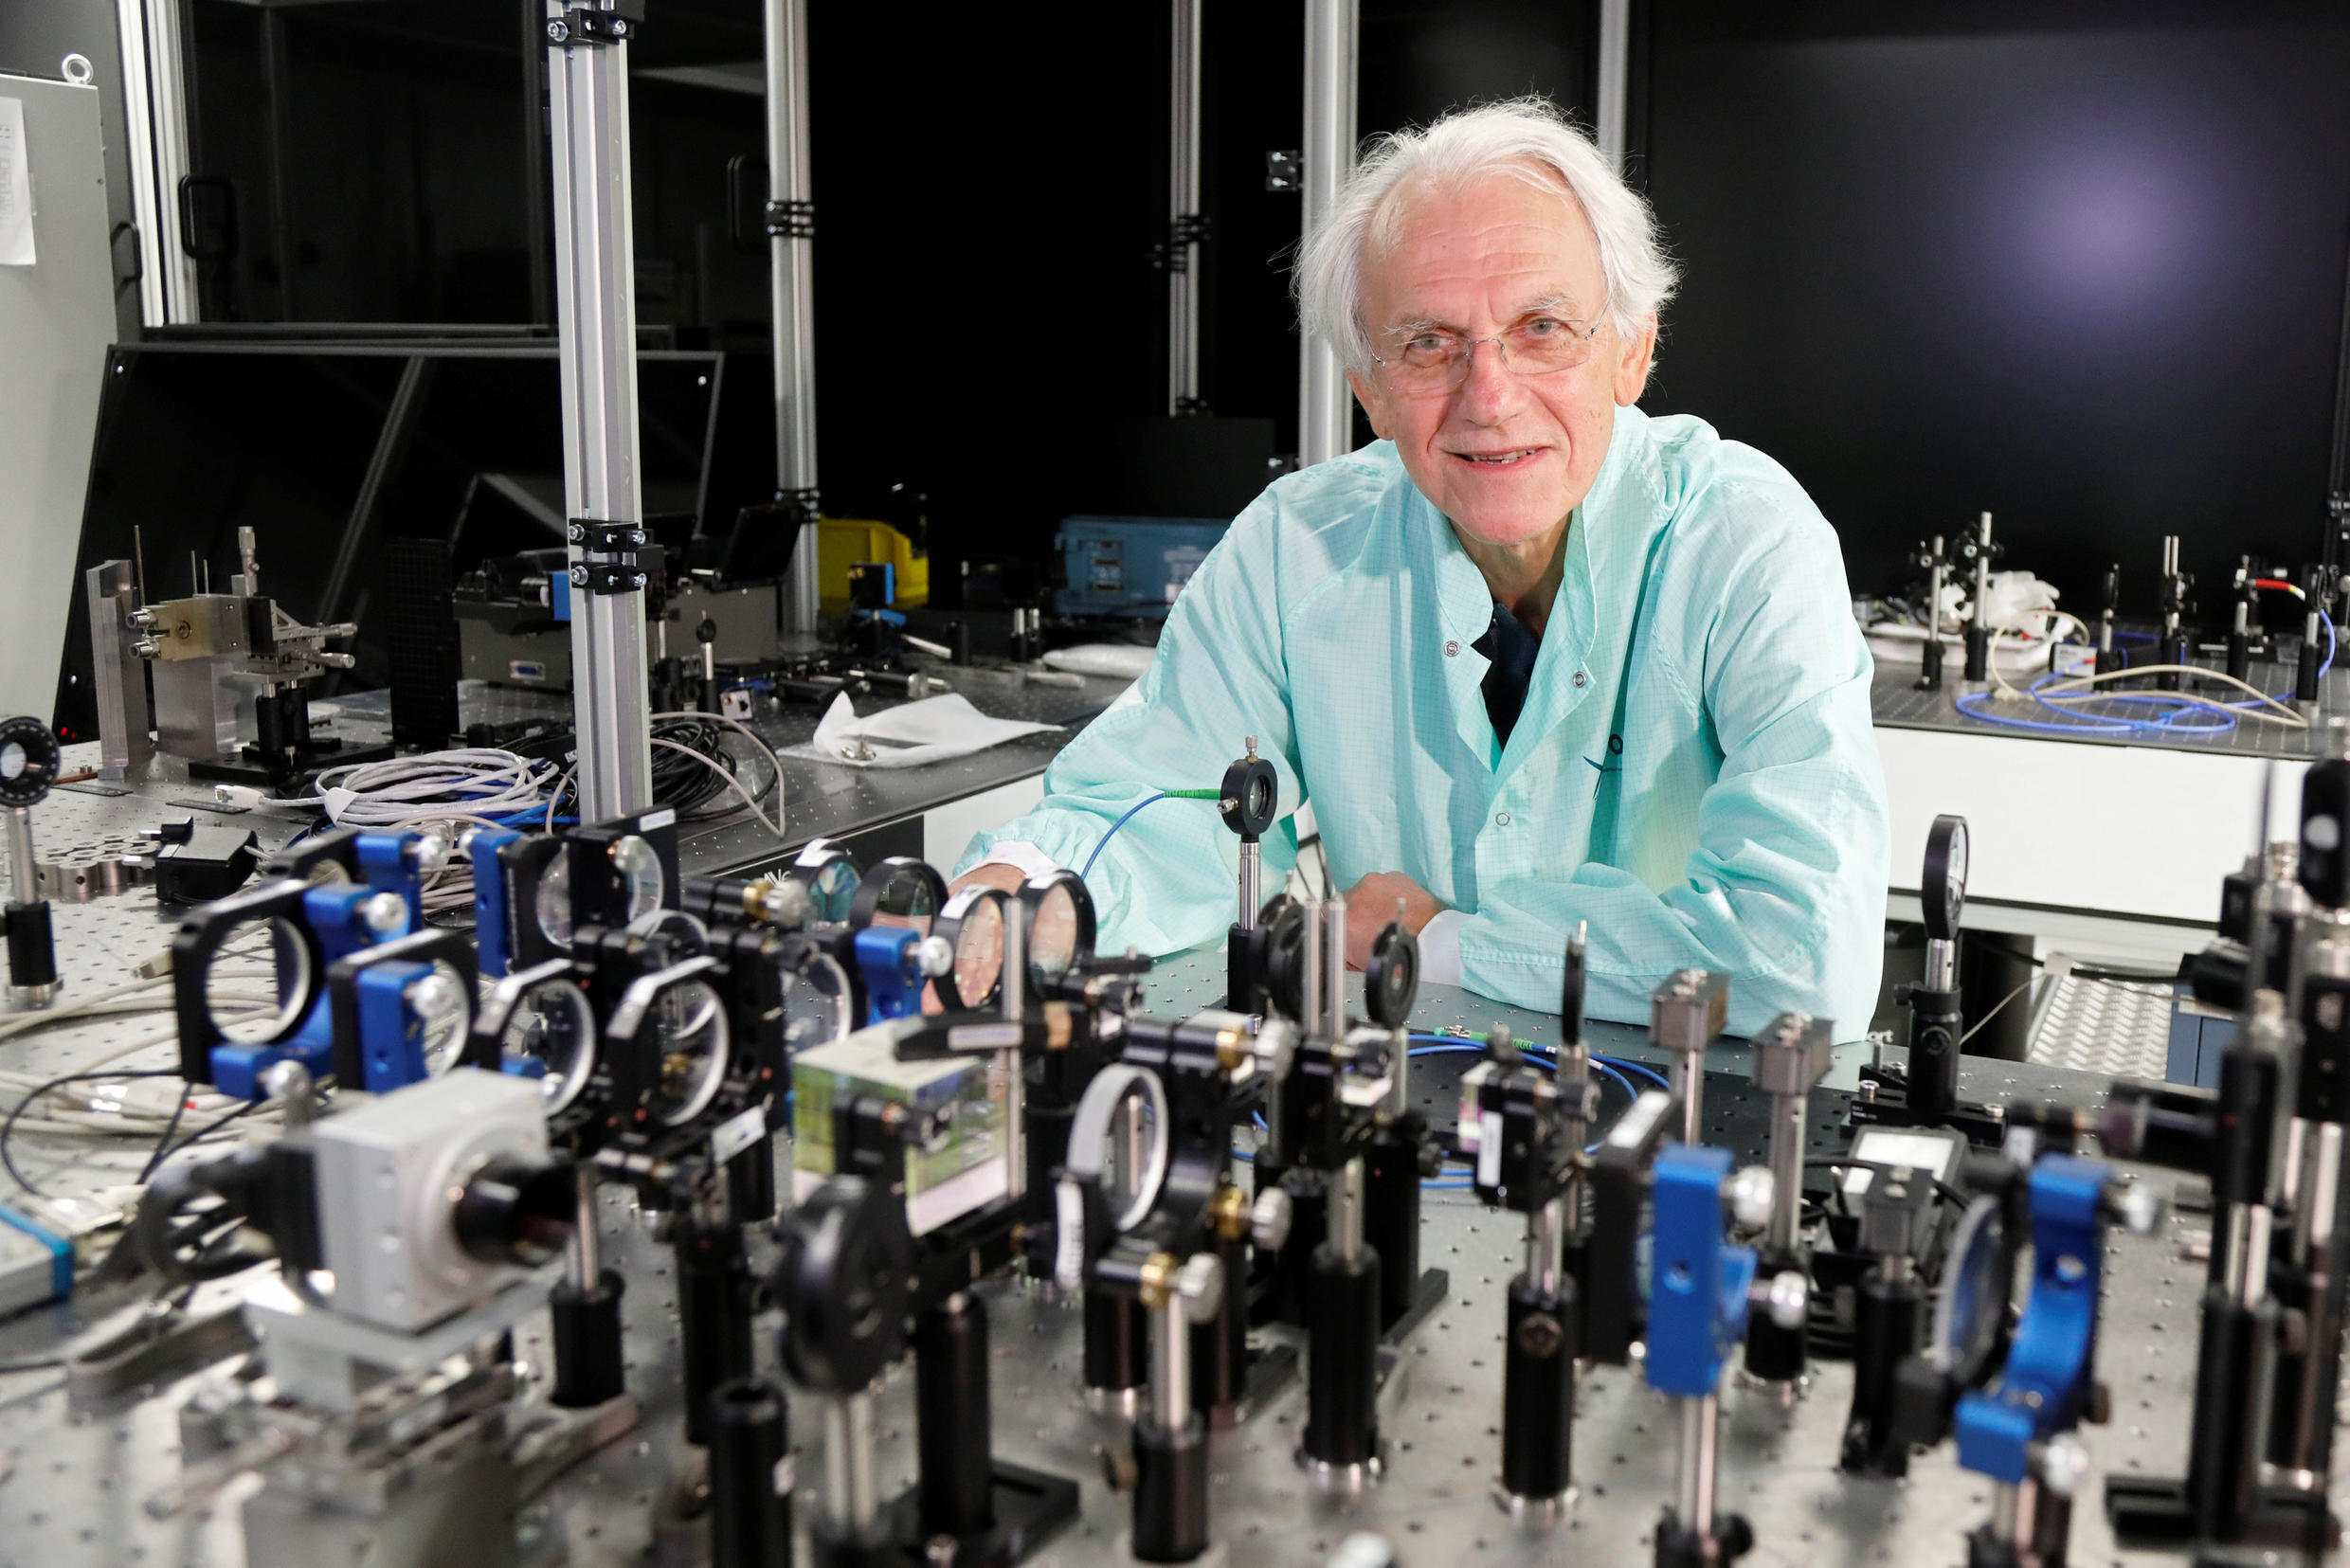 Gerard Mourou, one of three Nobel Prize laureates for physics 2018, poses in his laboratory at the Ecole Polytechnique in Palaiseau, near Paris.